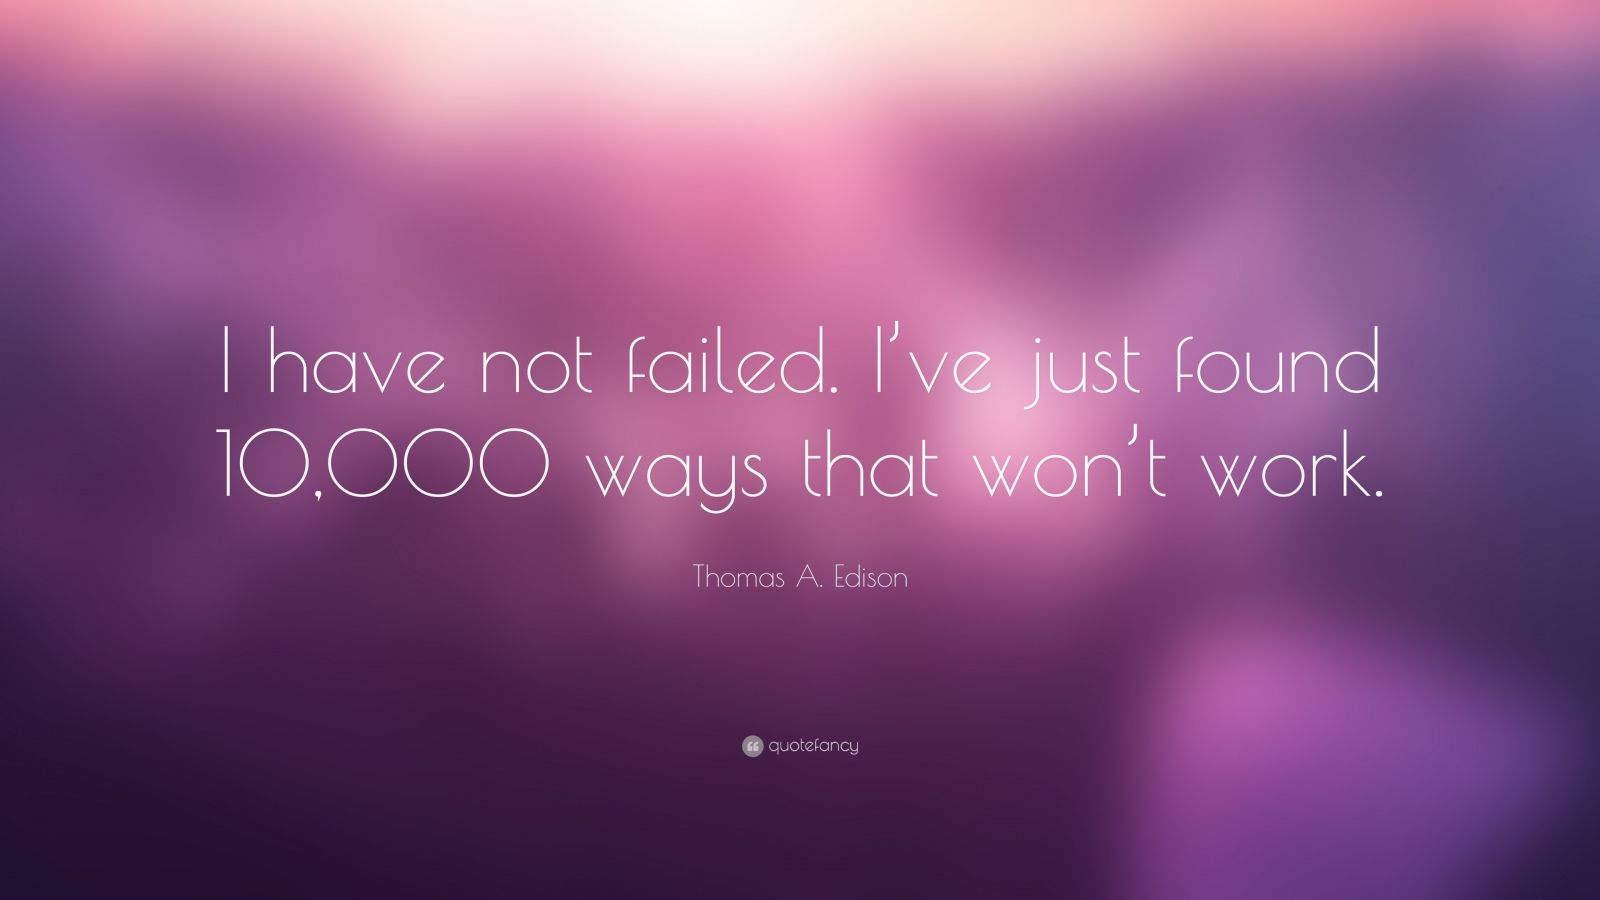 Steve Jobs Motivational Quotes Wallpaper Thomas A Edison Quote I Have Not Failed I Ve Just